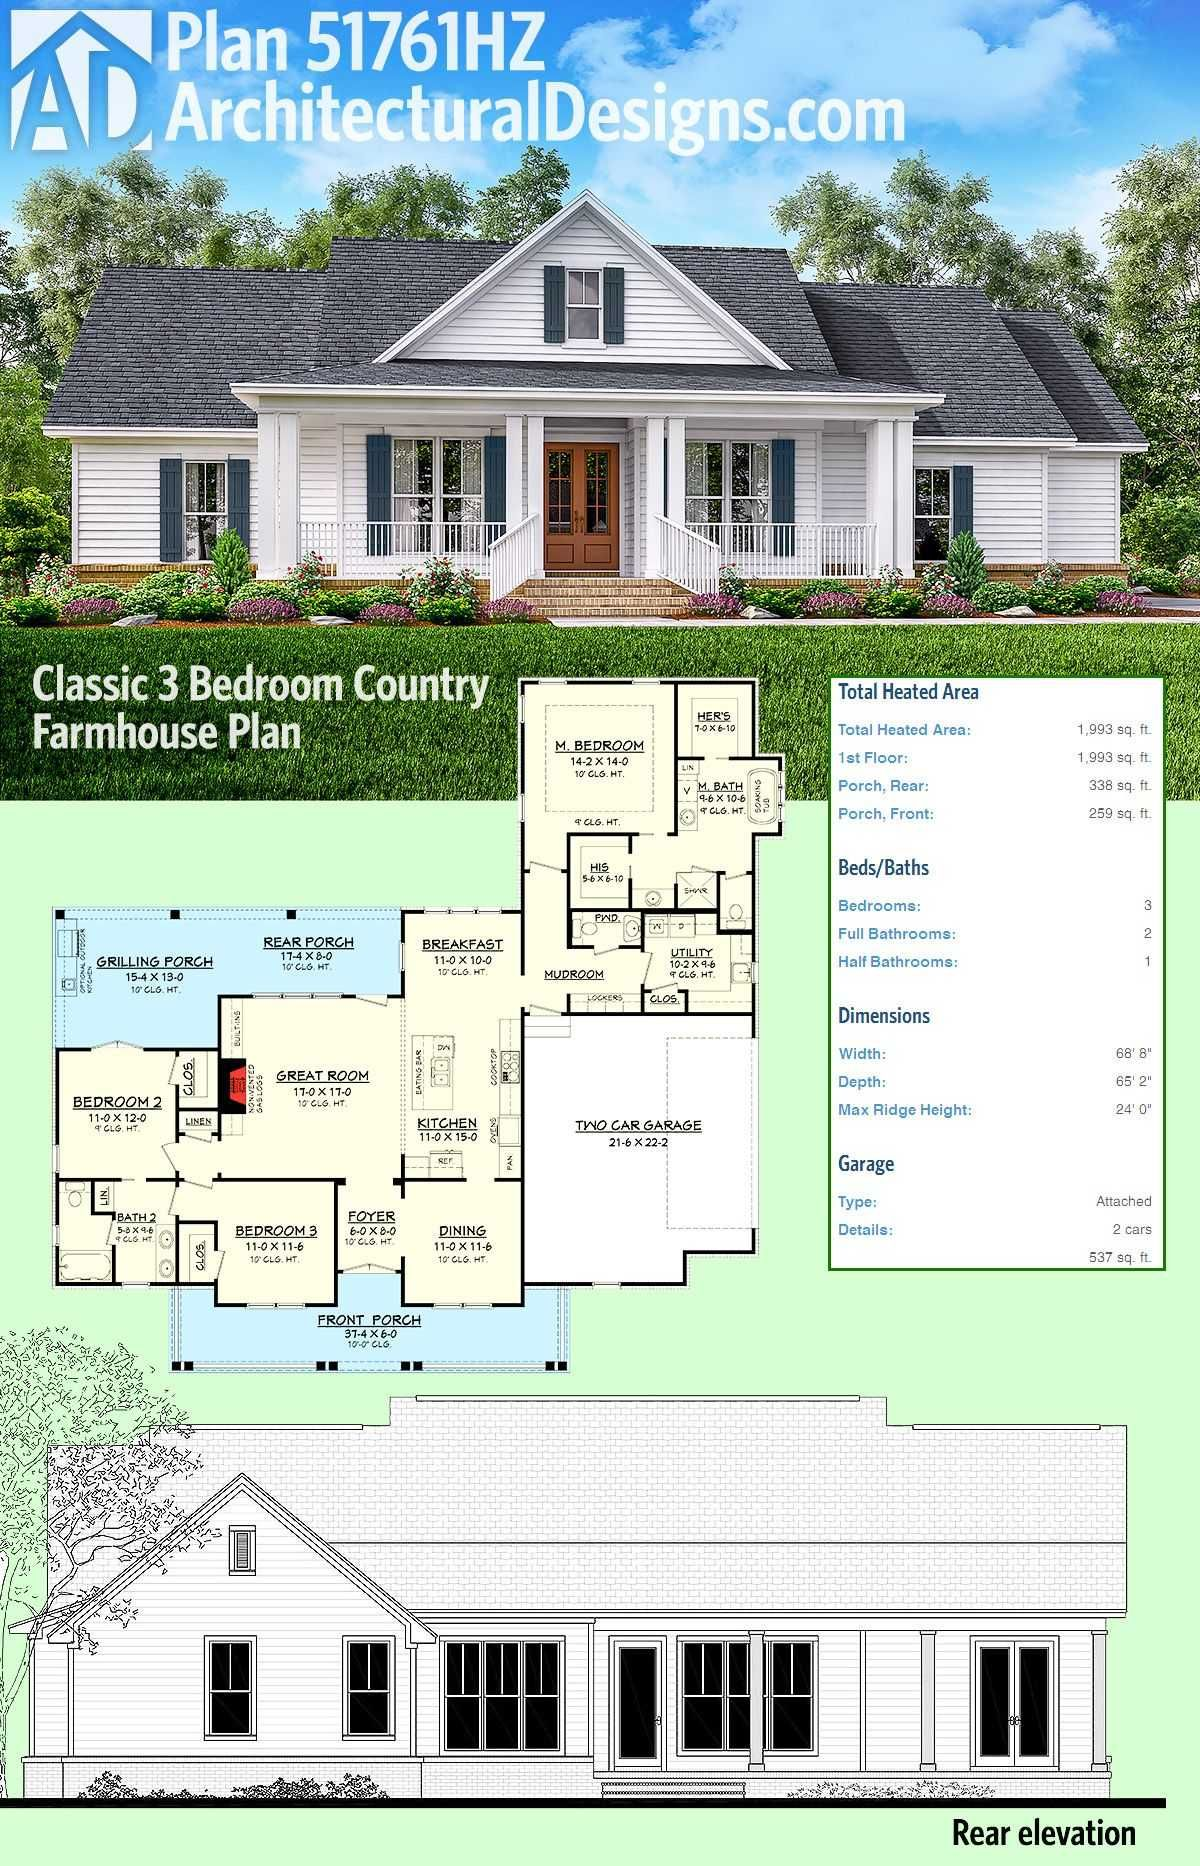 Wrap Around Porch Modern One Story Farmhouse Plans Beautiful Wrap Around Porch Modern Architectural Design House Plans Farmhouse Floor Plans Farmhouse Plans